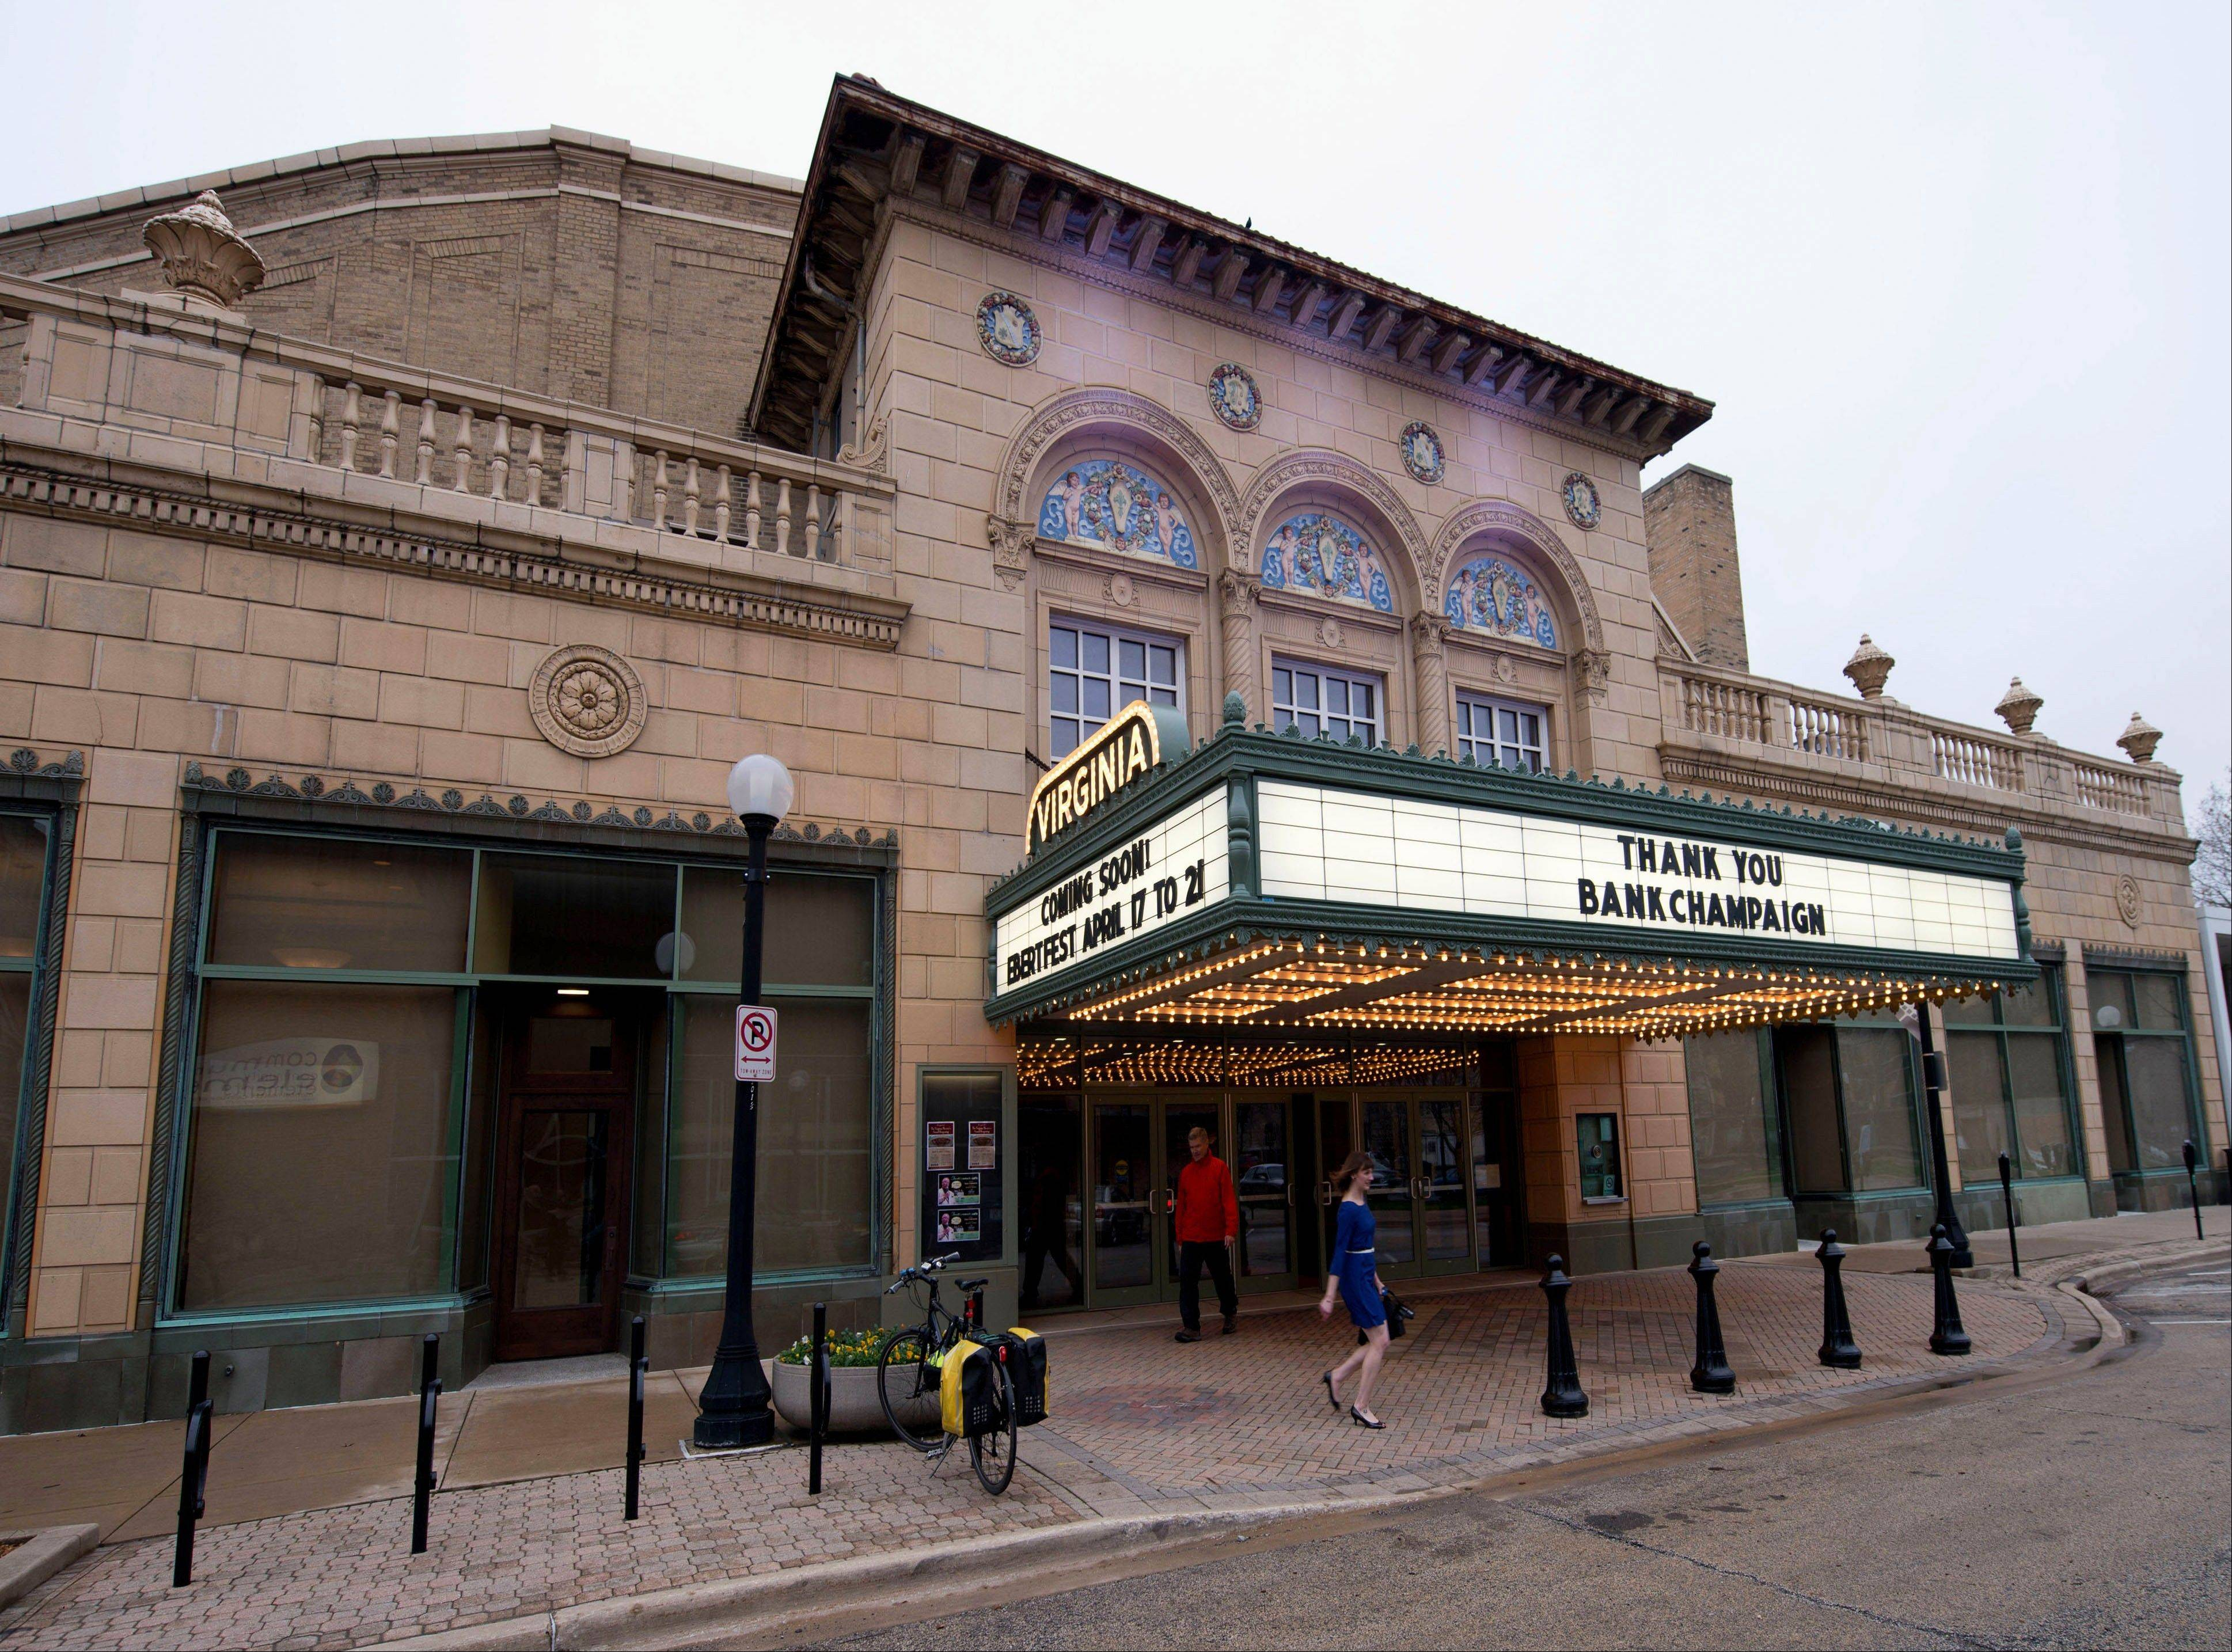 The renovated Virginia Theater will plays host to the annual Ebertfest film festival beginning Wednesday, April 17, in Champaign.